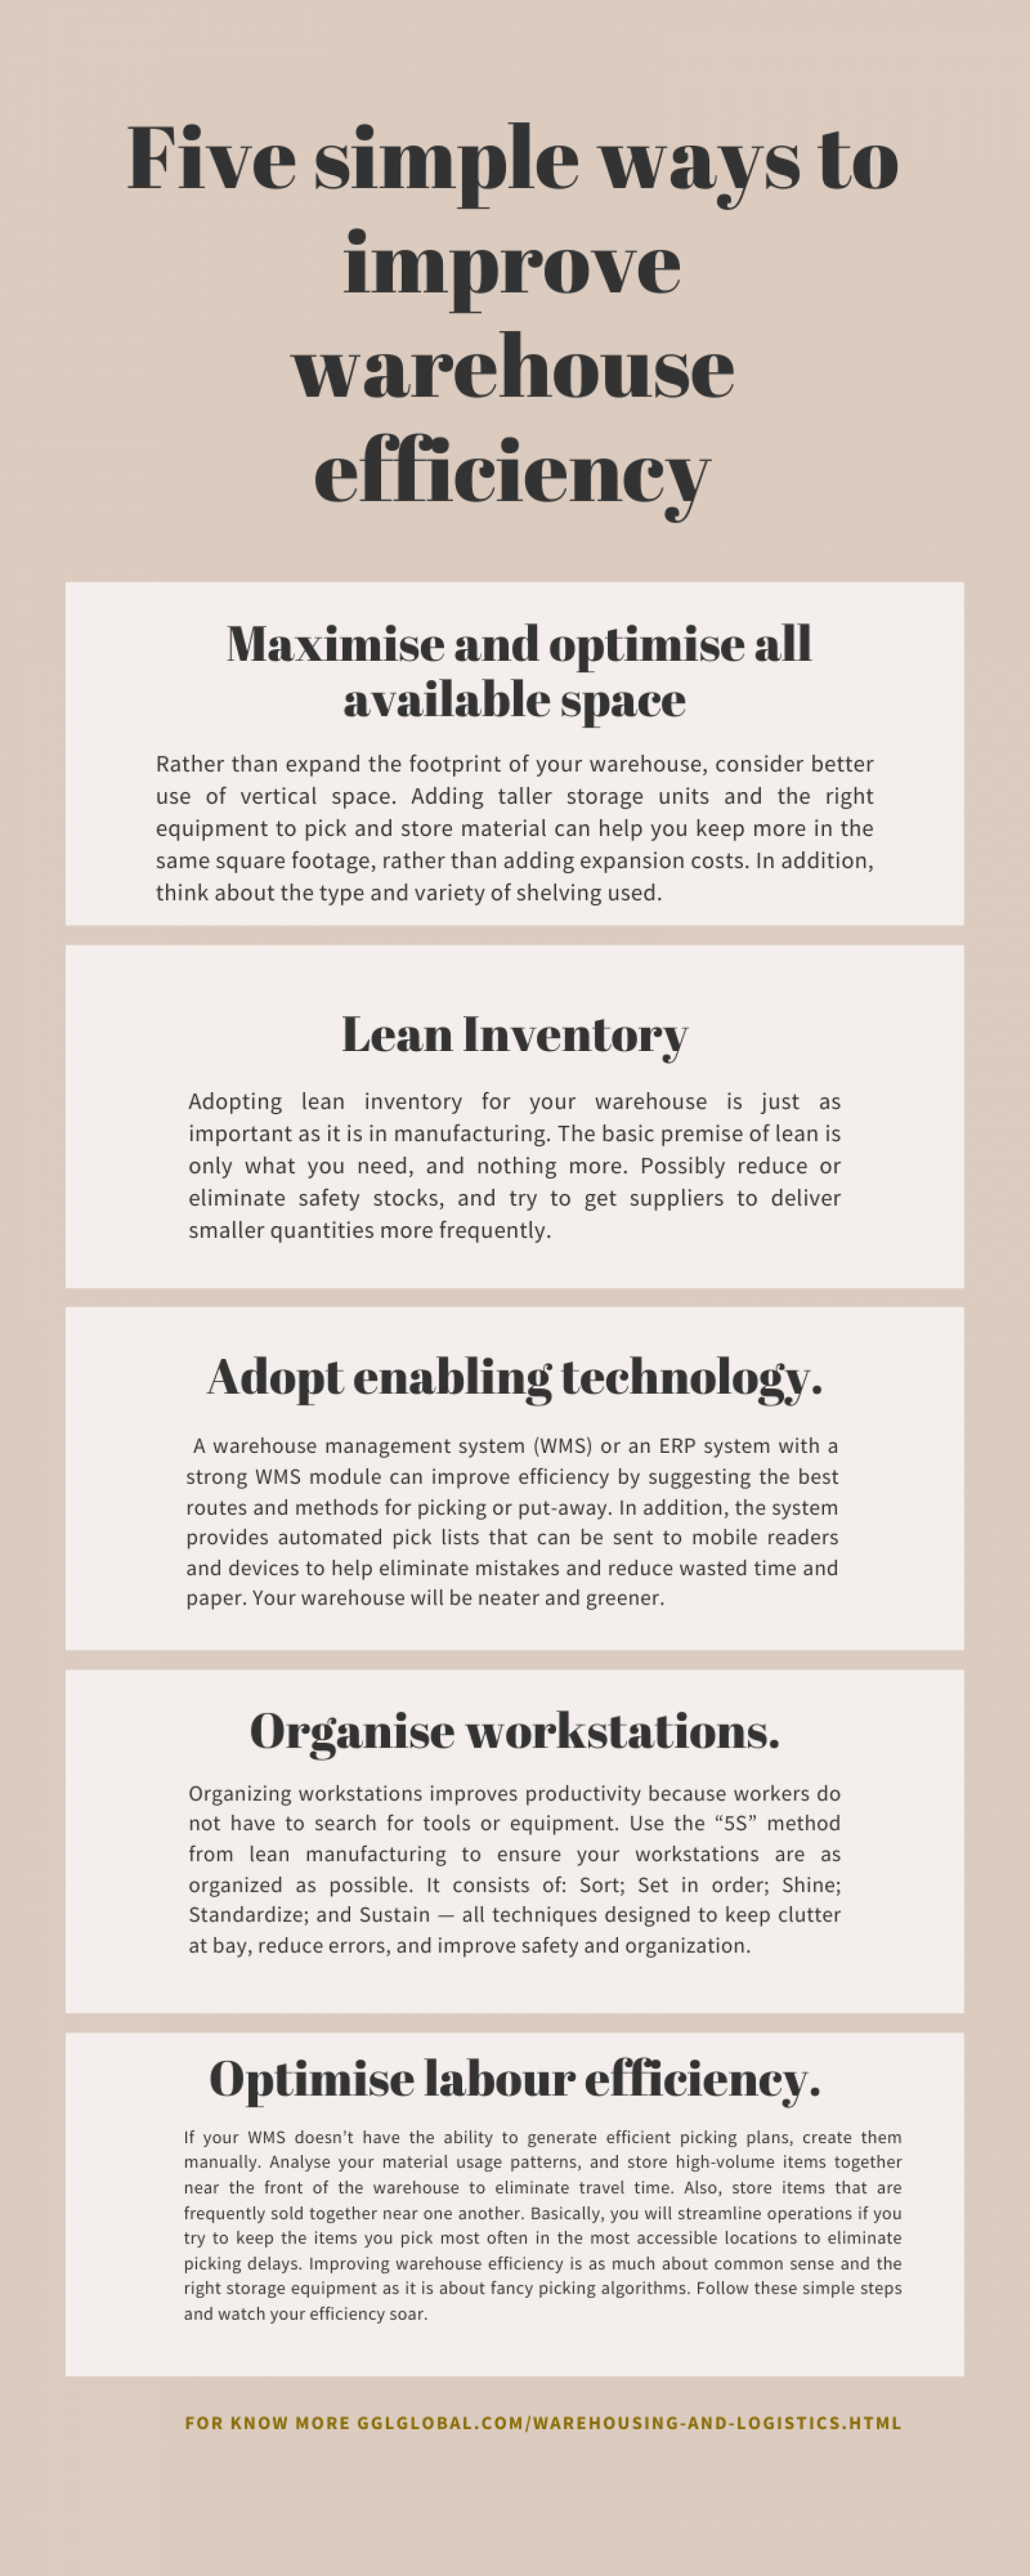 Five simple ways to improve warehouse efficiency. Infographic